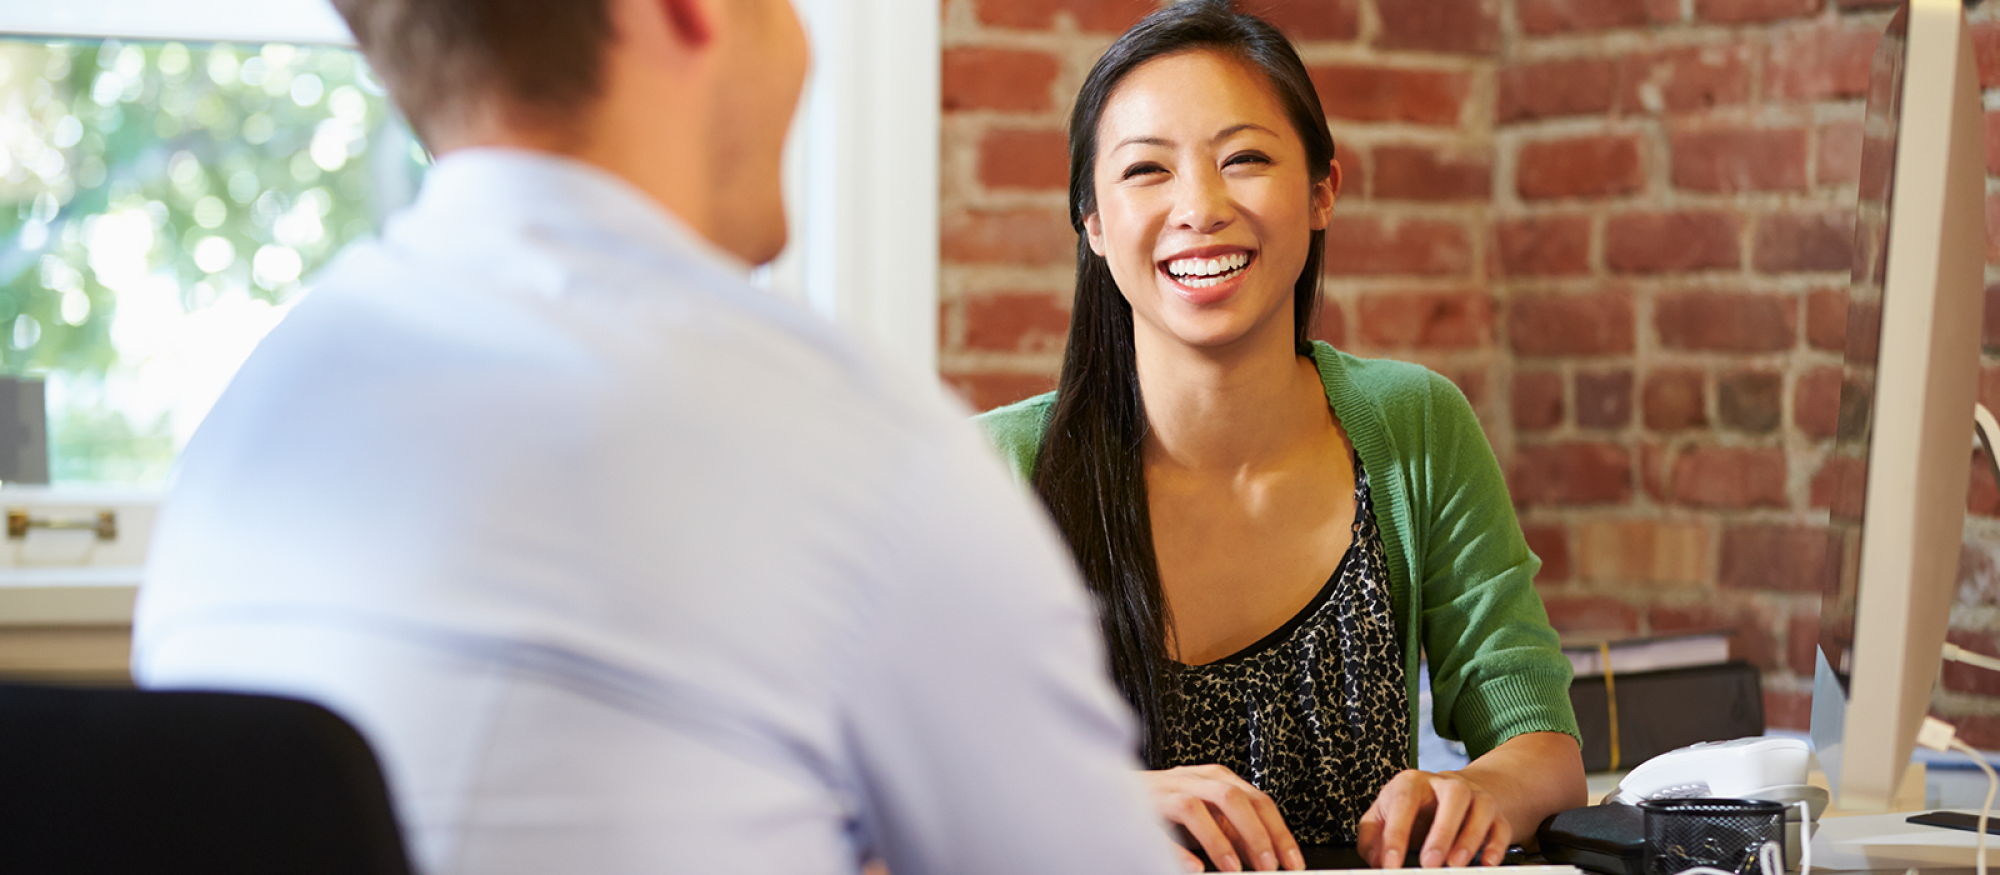 Smiling hiring manager meeting with an applicant